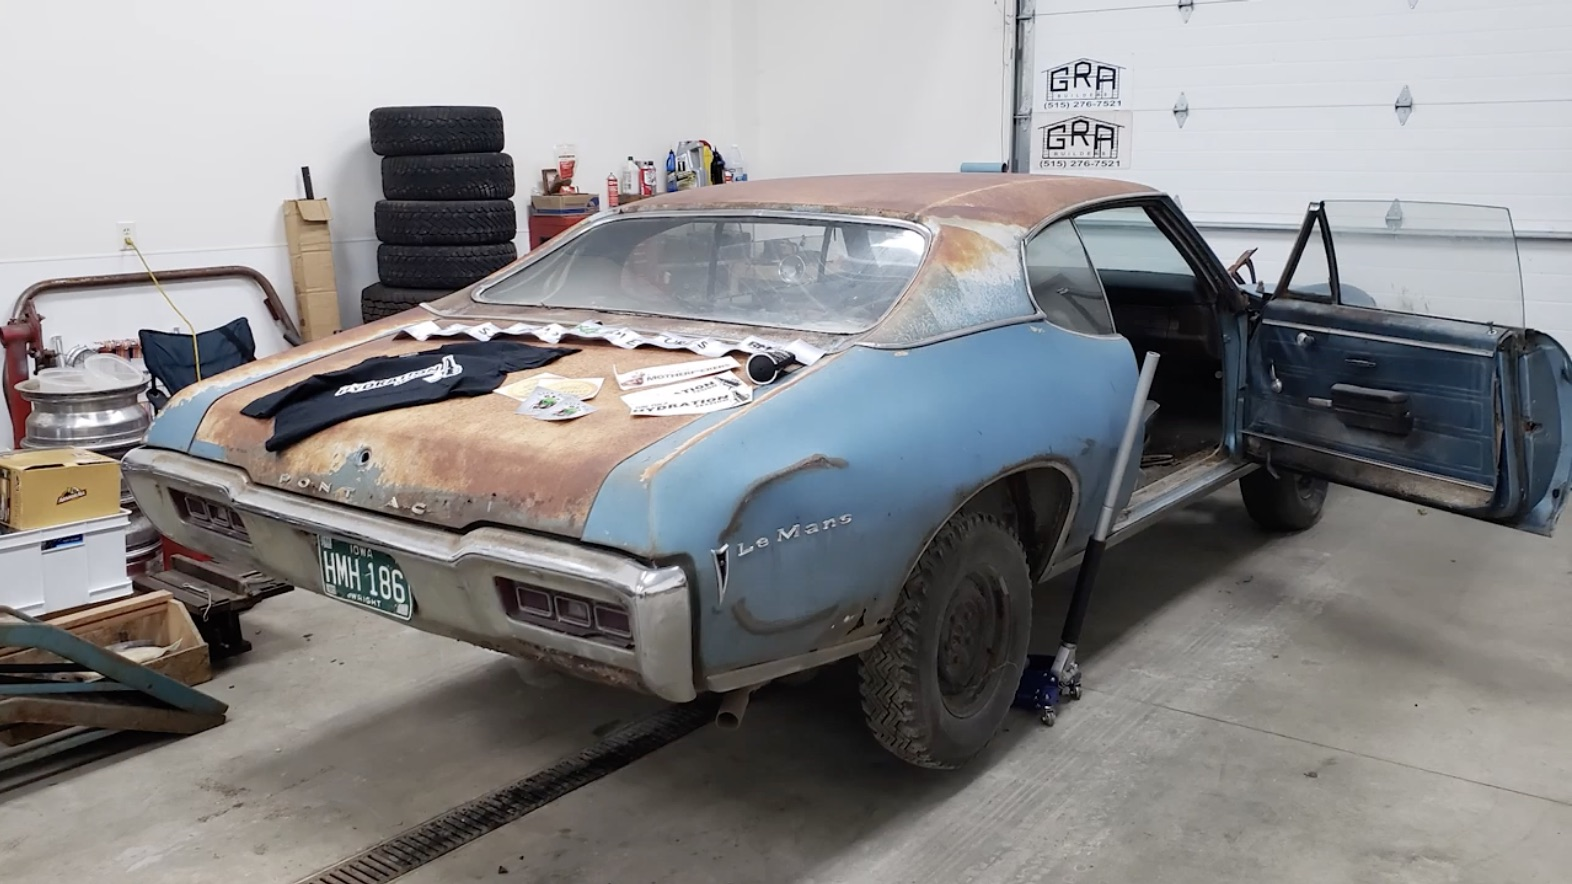 The LeManster, Part 1: Making An Off-Roader Out Of A Left-For-Dead Pontiac